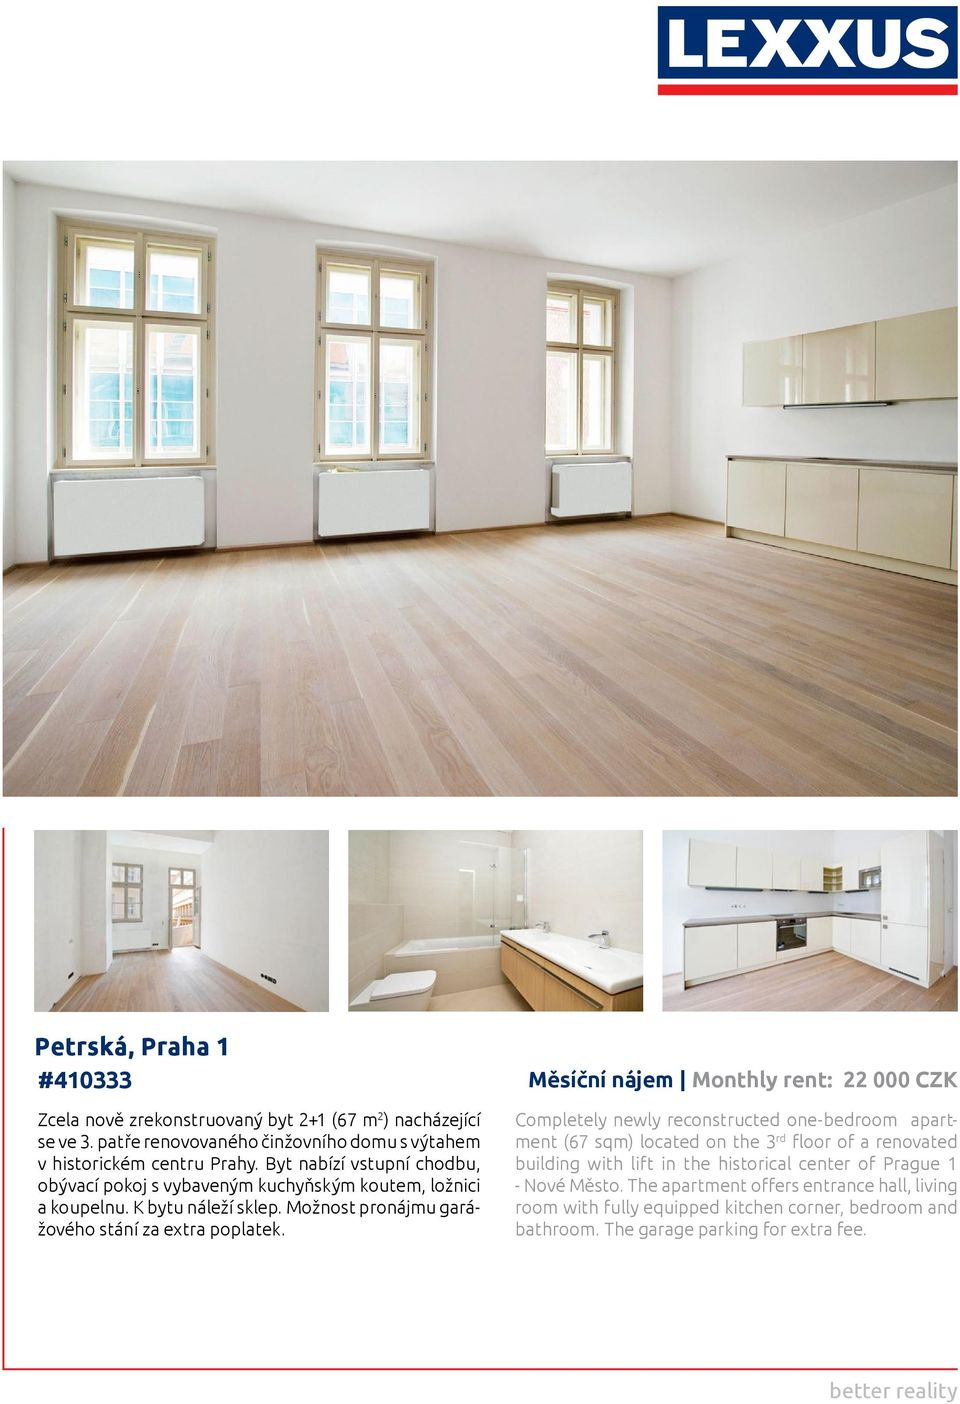 Měsíční nájem Monthly rent: 22 000 CZK Completely newly reconstructed one-bedroom apartment (67 sqm) located on the 3 rd floor of a renovated building with lift in the